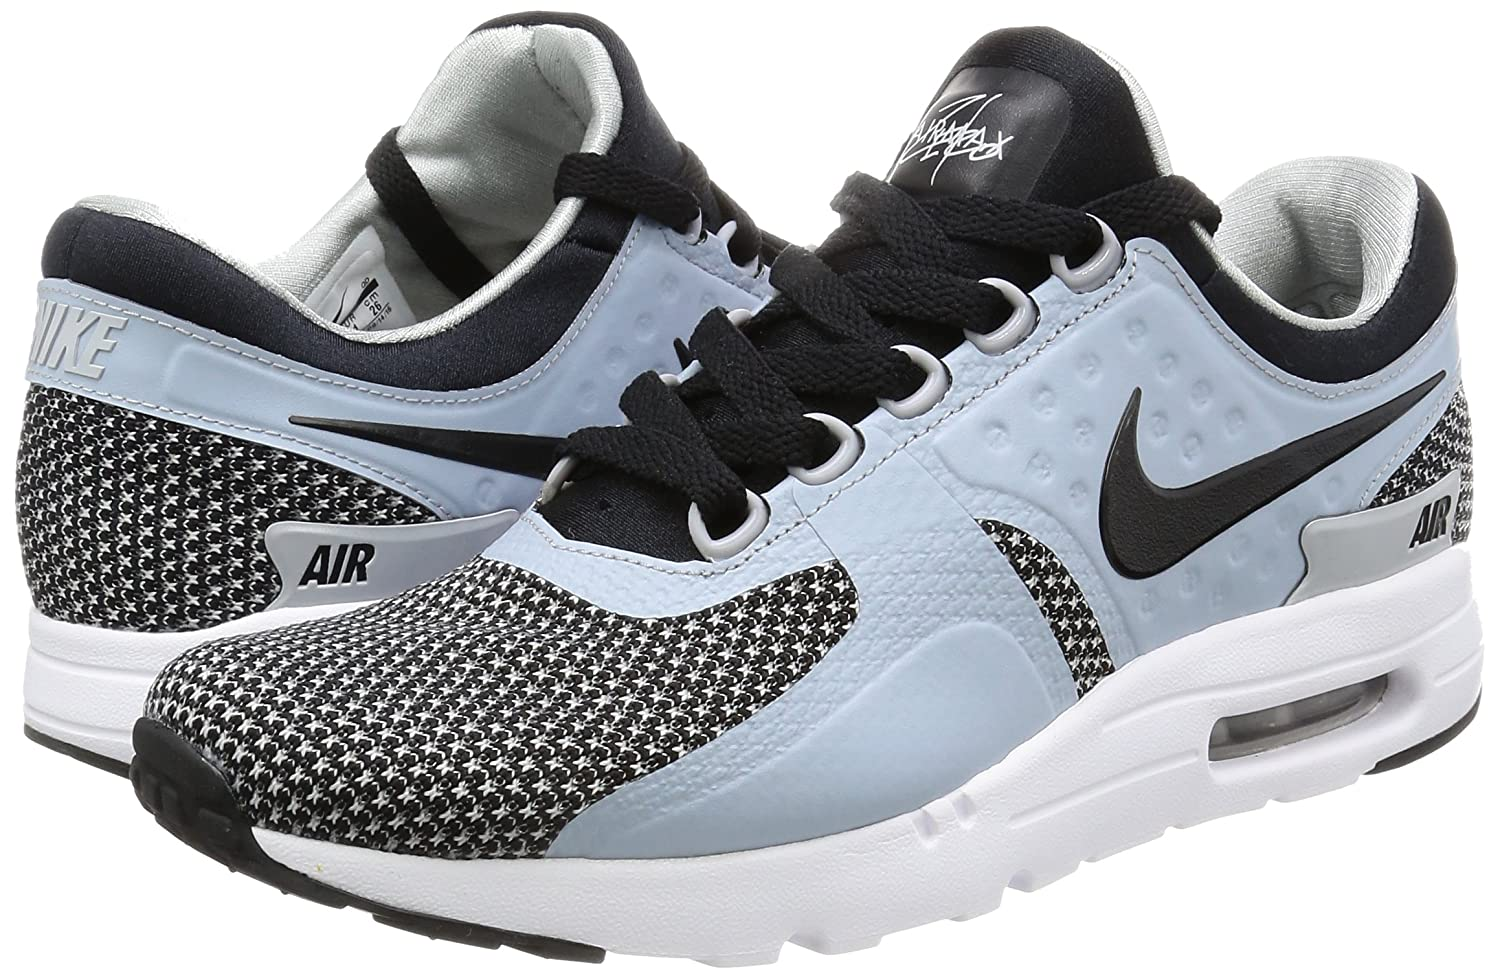 fcef2d7ccdd3c ... NIKE Air Max Zero Essential Mens Running Running Running Shoes  B01MY7DVUU 11.5 M US